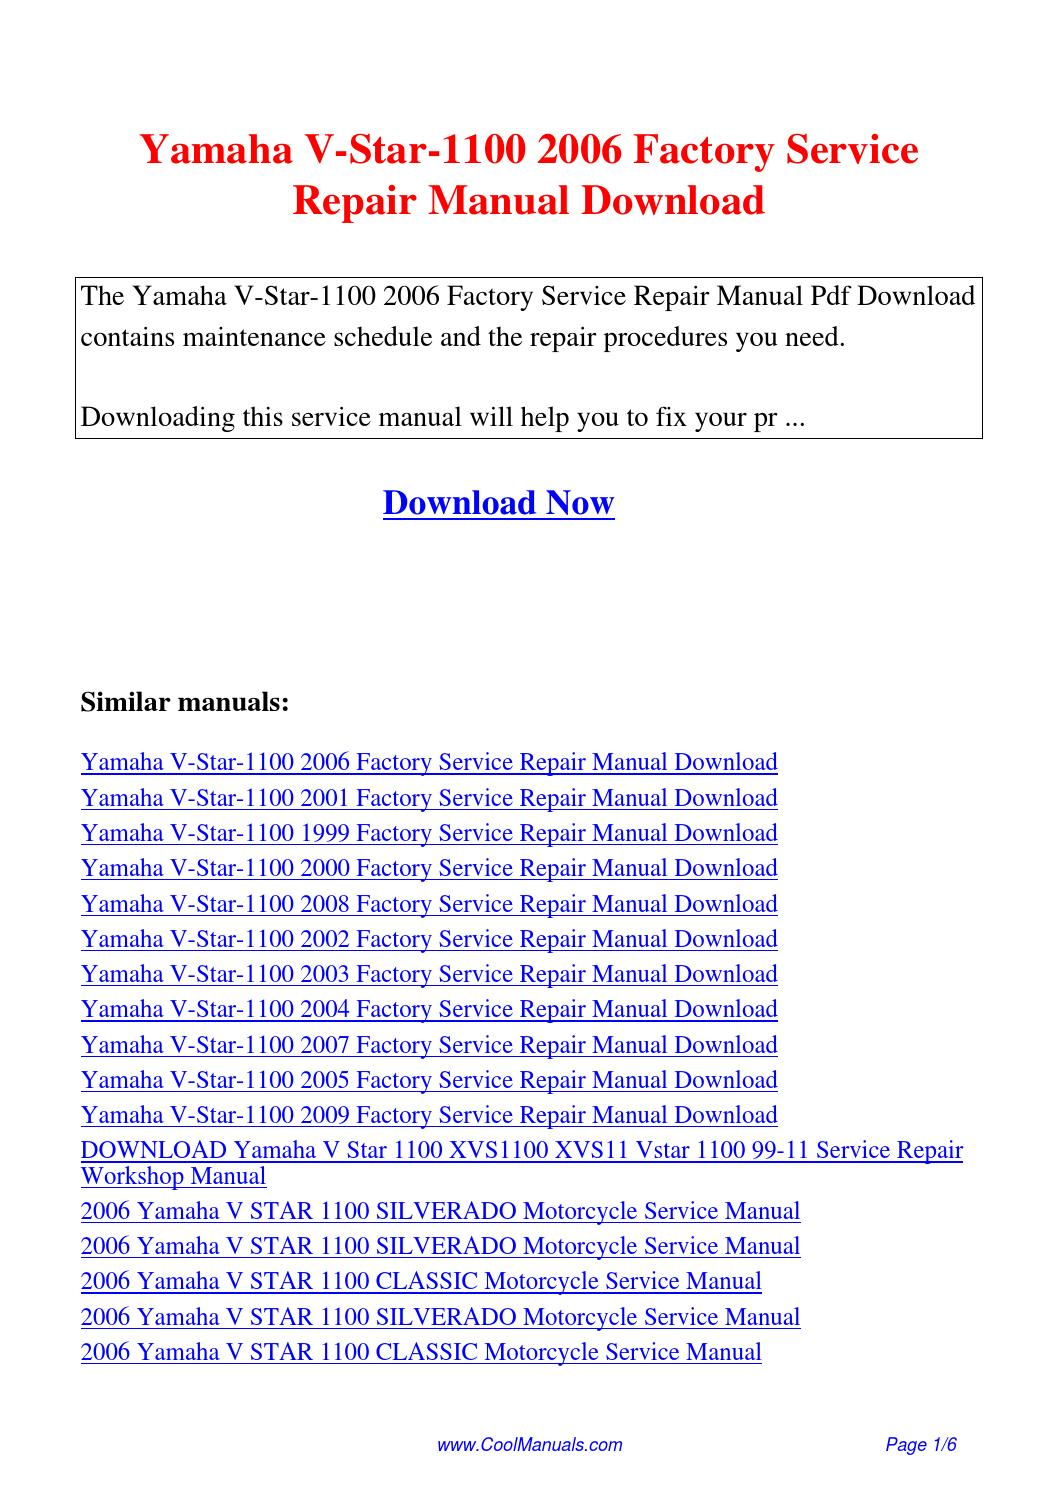 Yamaha V-Star-1100 2006 Factory Service Repair Manual.pdf by Linda Pong -  issuu